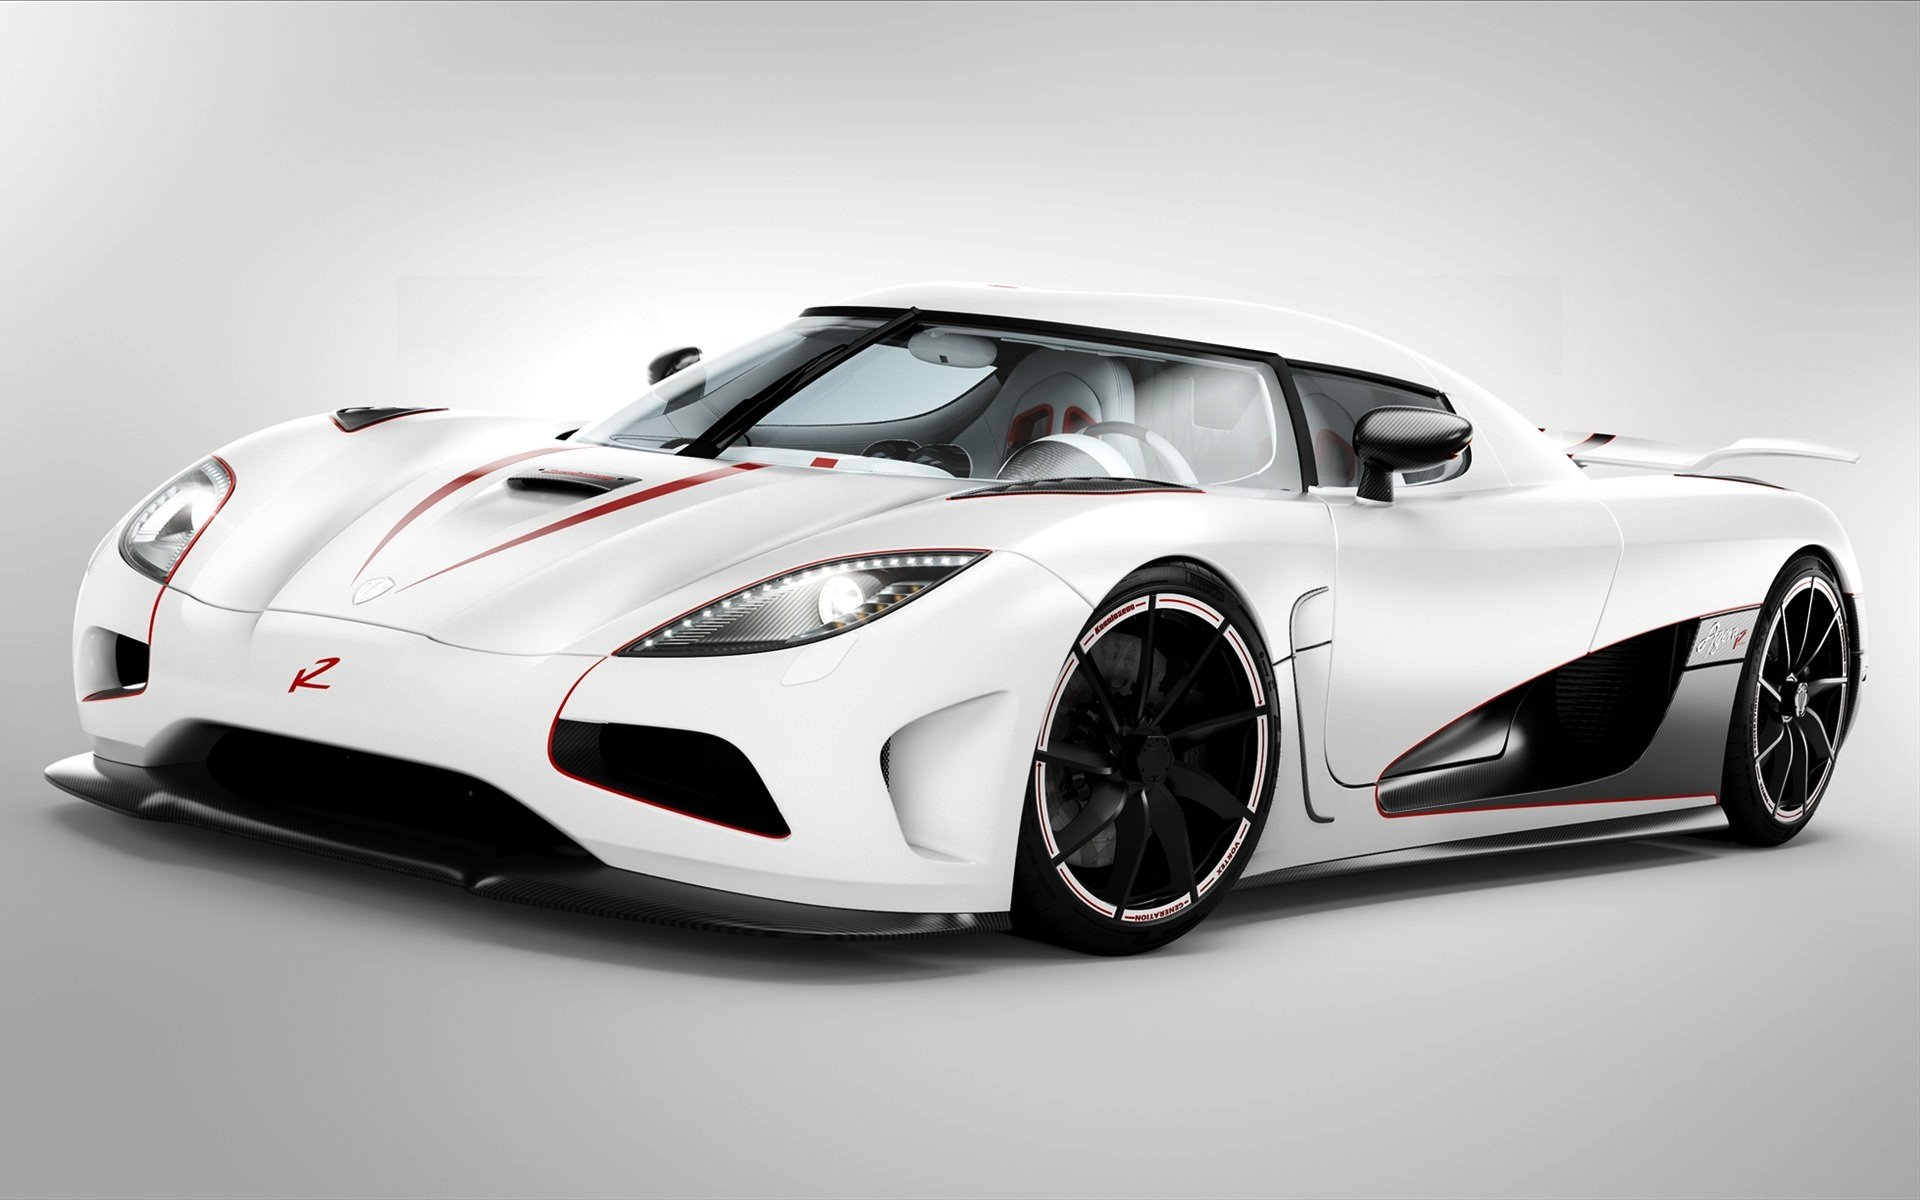 2012 Koenigsegg Agera Supercar Wallpaper   HD 1920x1200